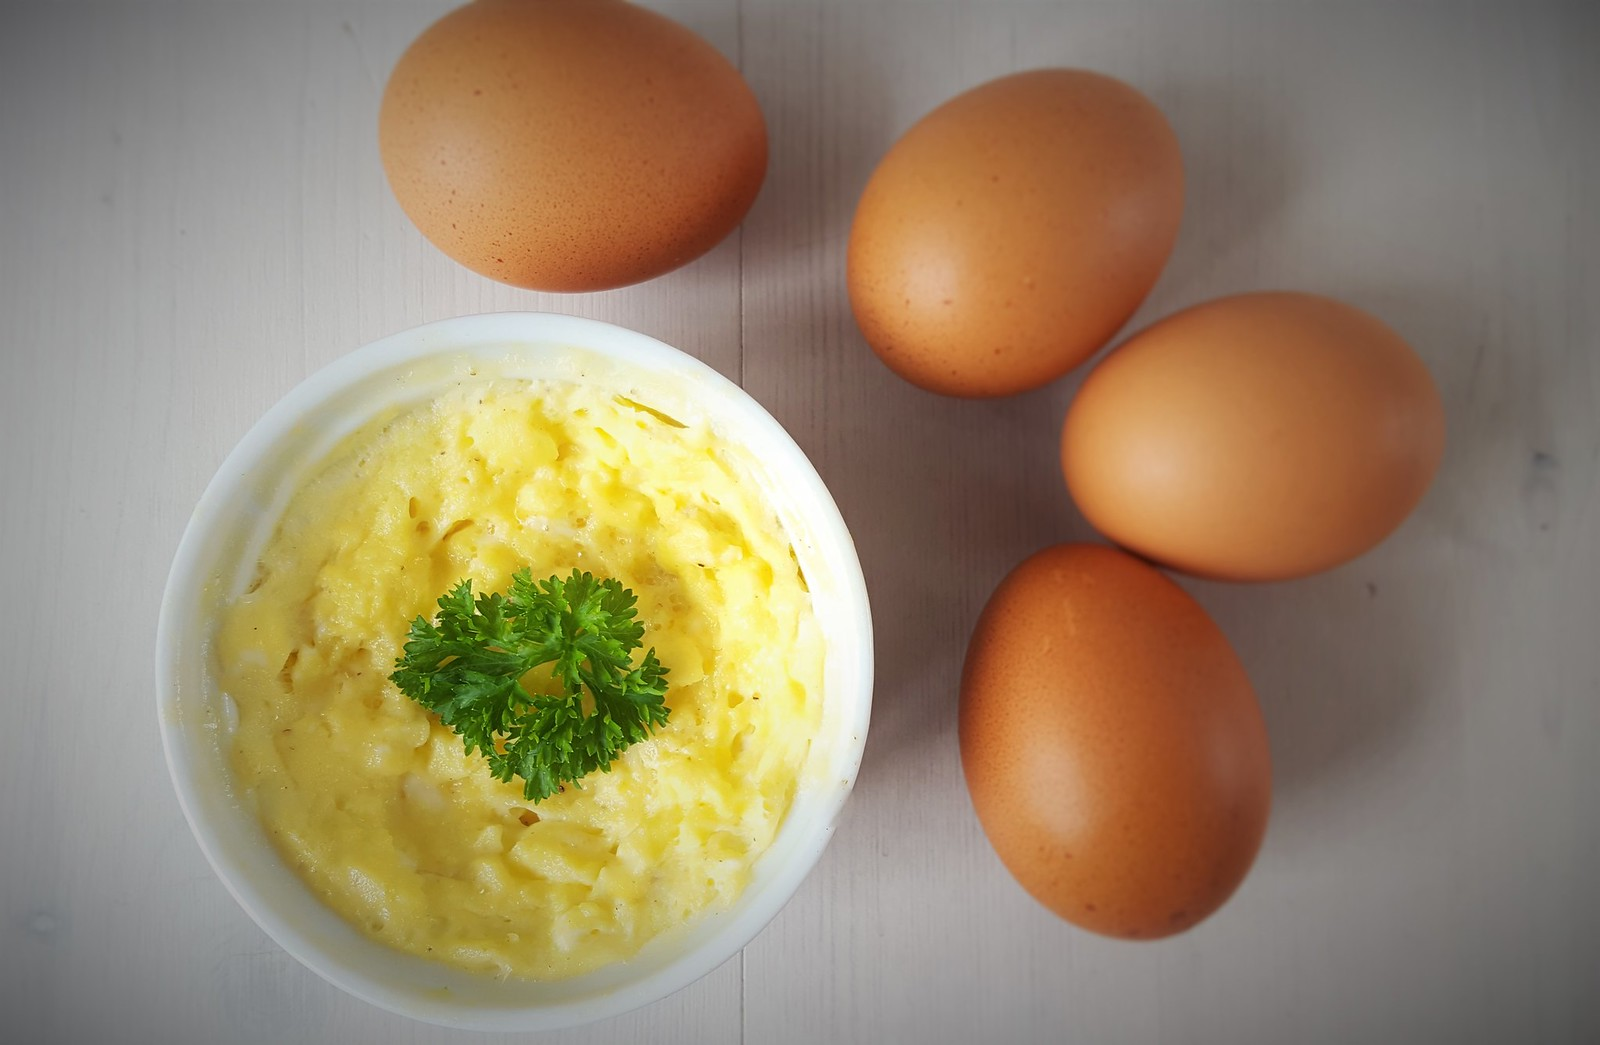 Recipe for Homemade Microwave Scrambled Eggs